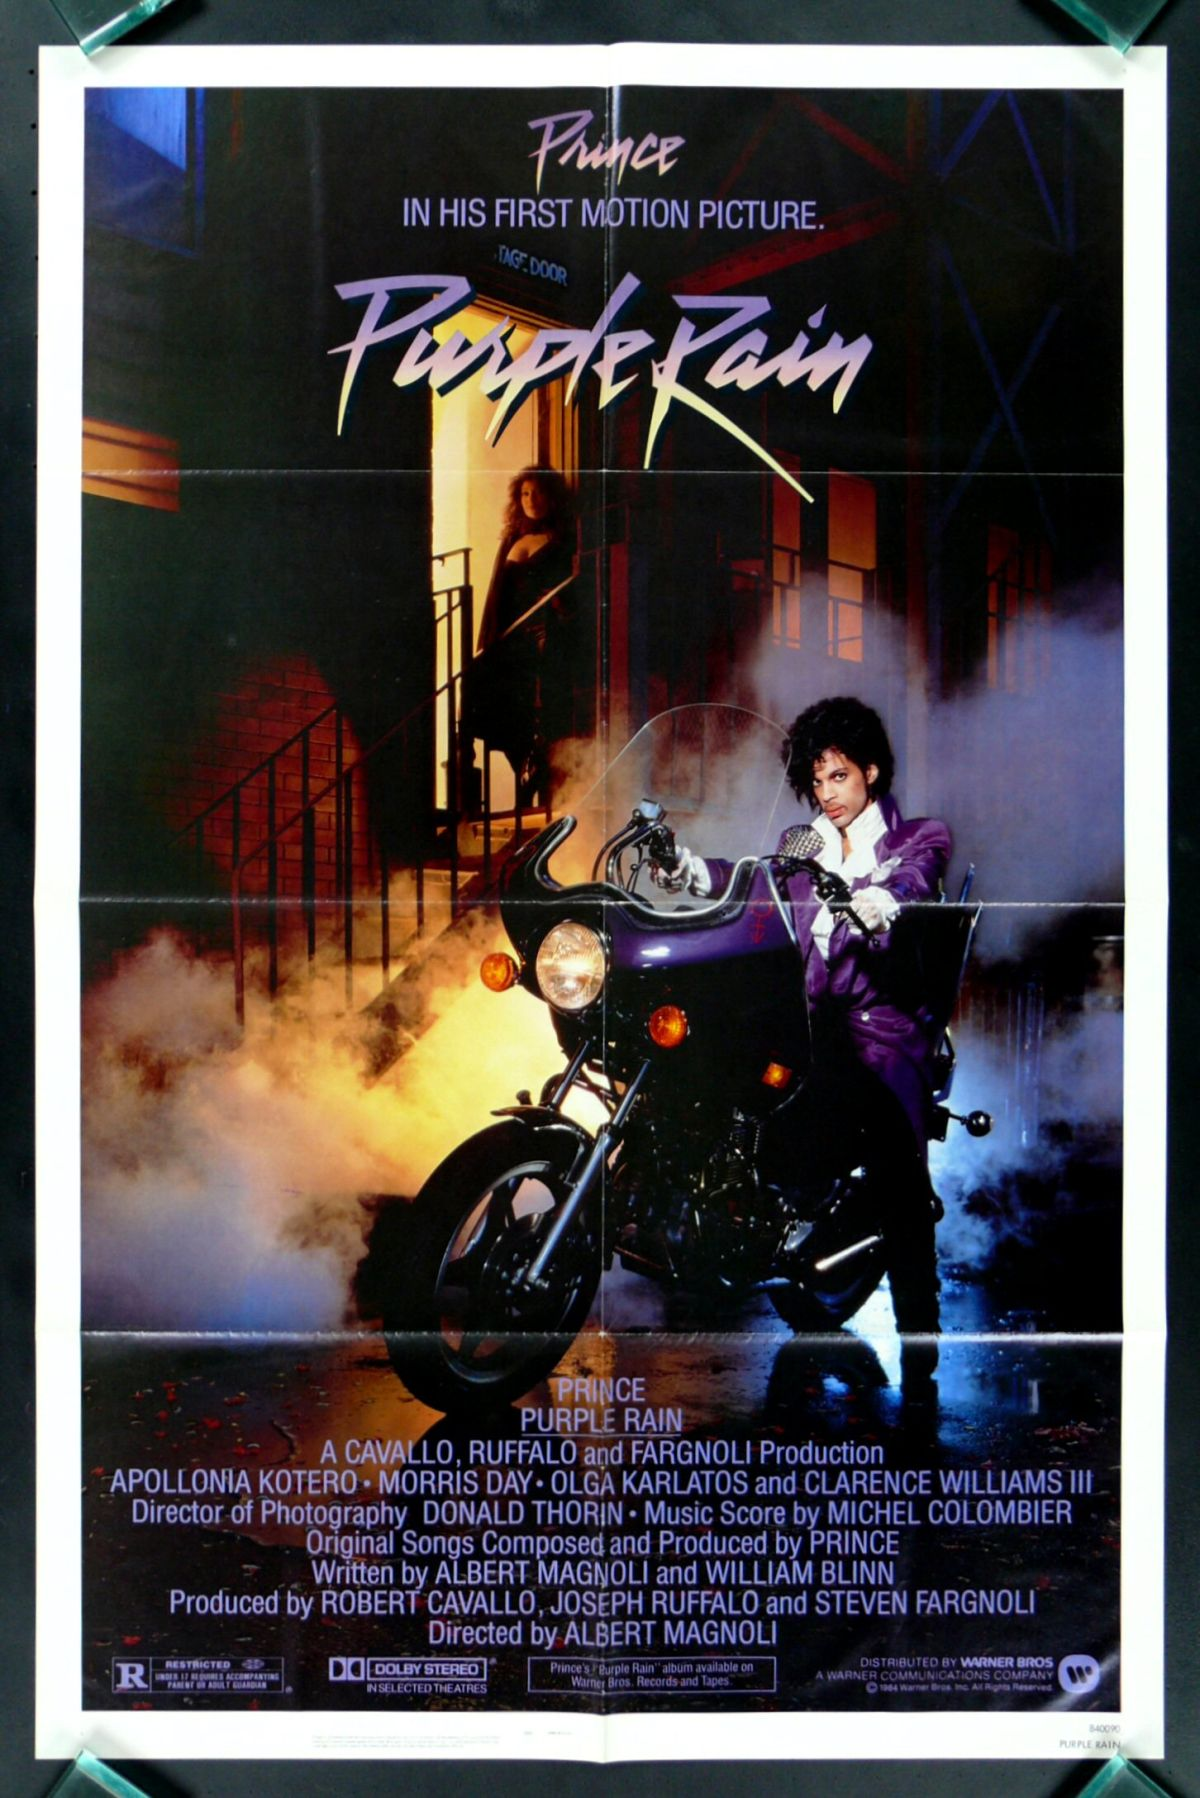 Purple Rain by Prince: The epic story of how it was made